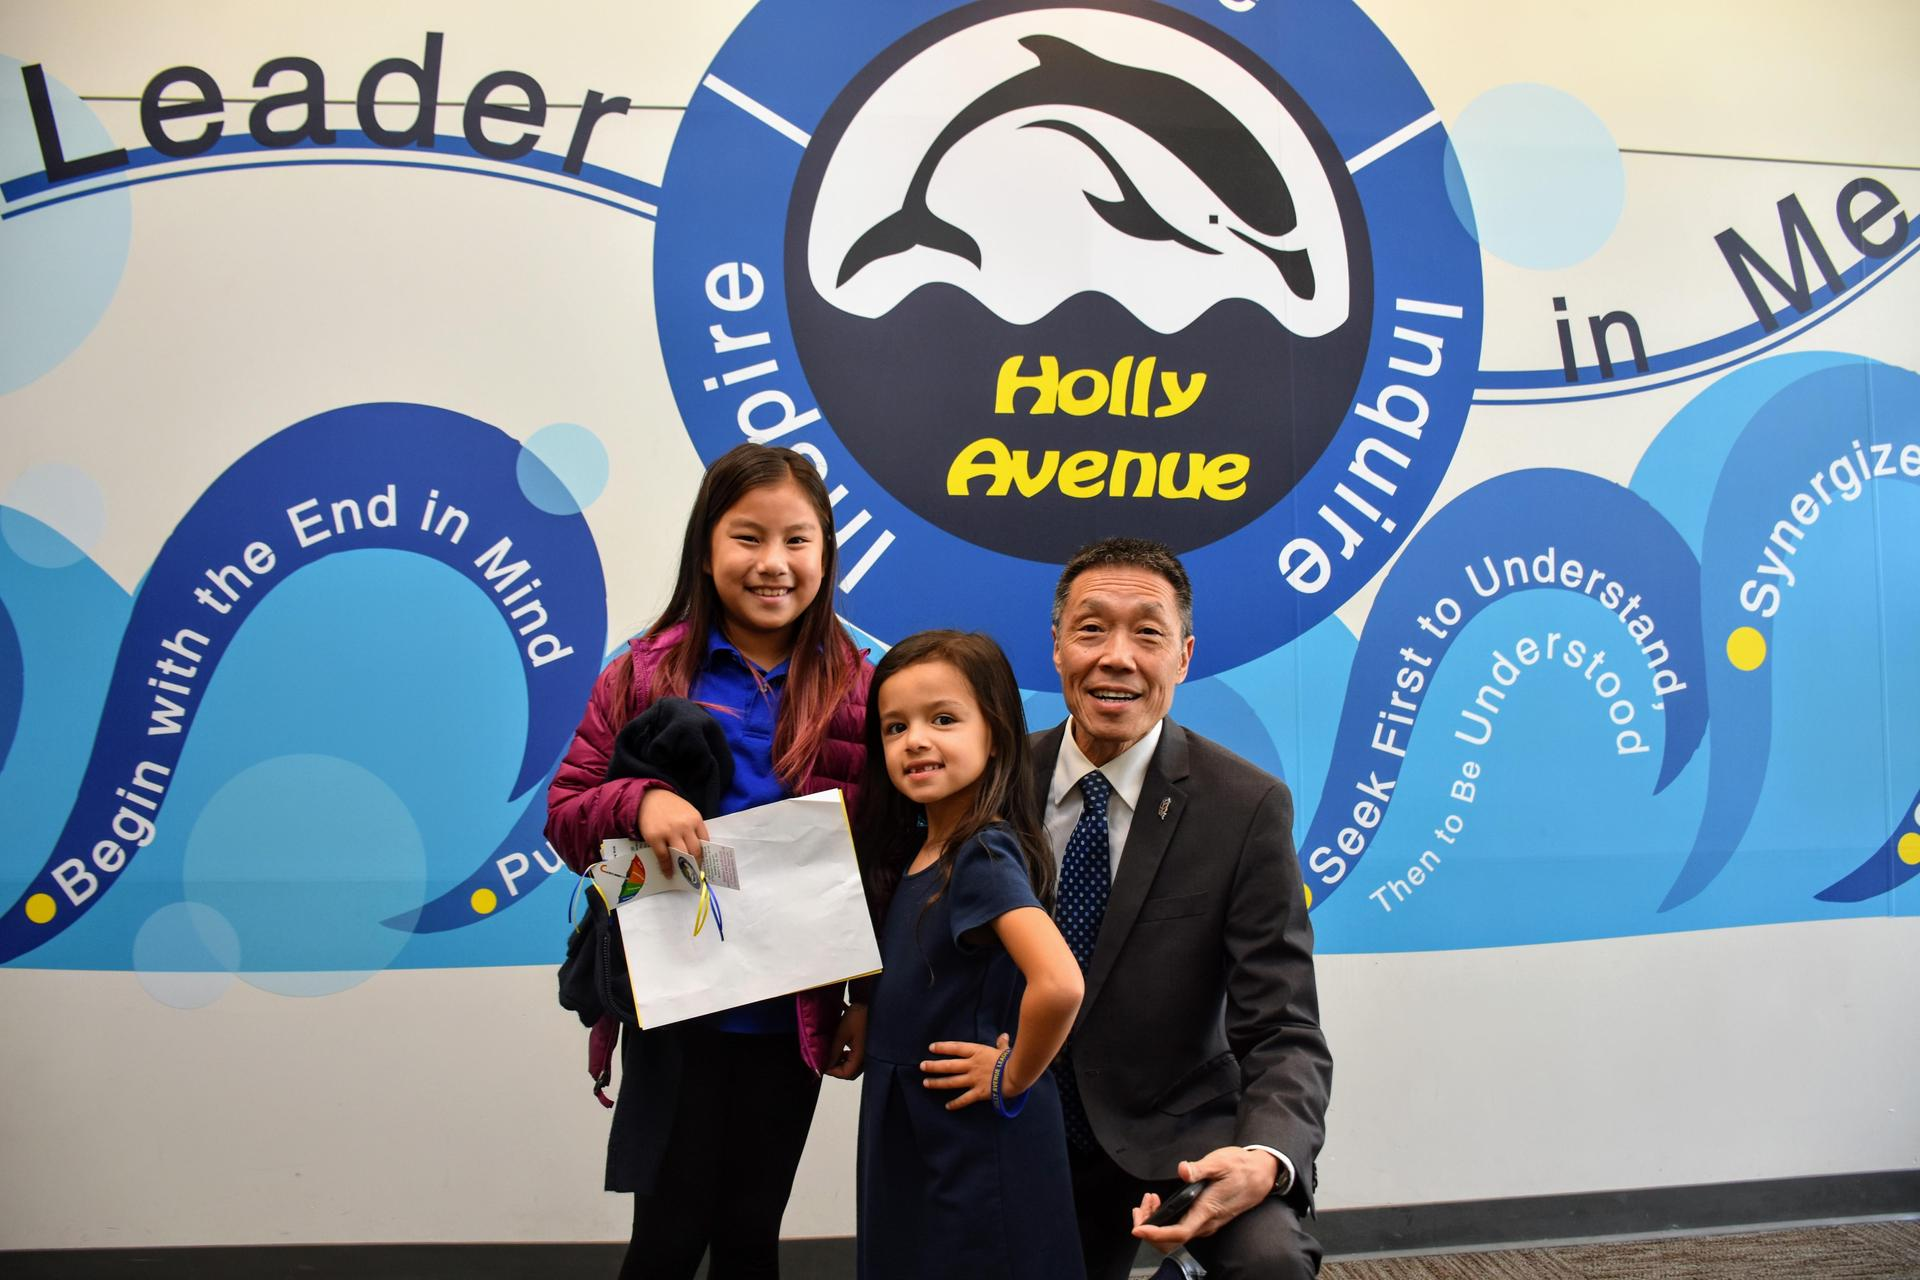 Arcadia Unified Board Member Fenton Eng with Holly Avenue students